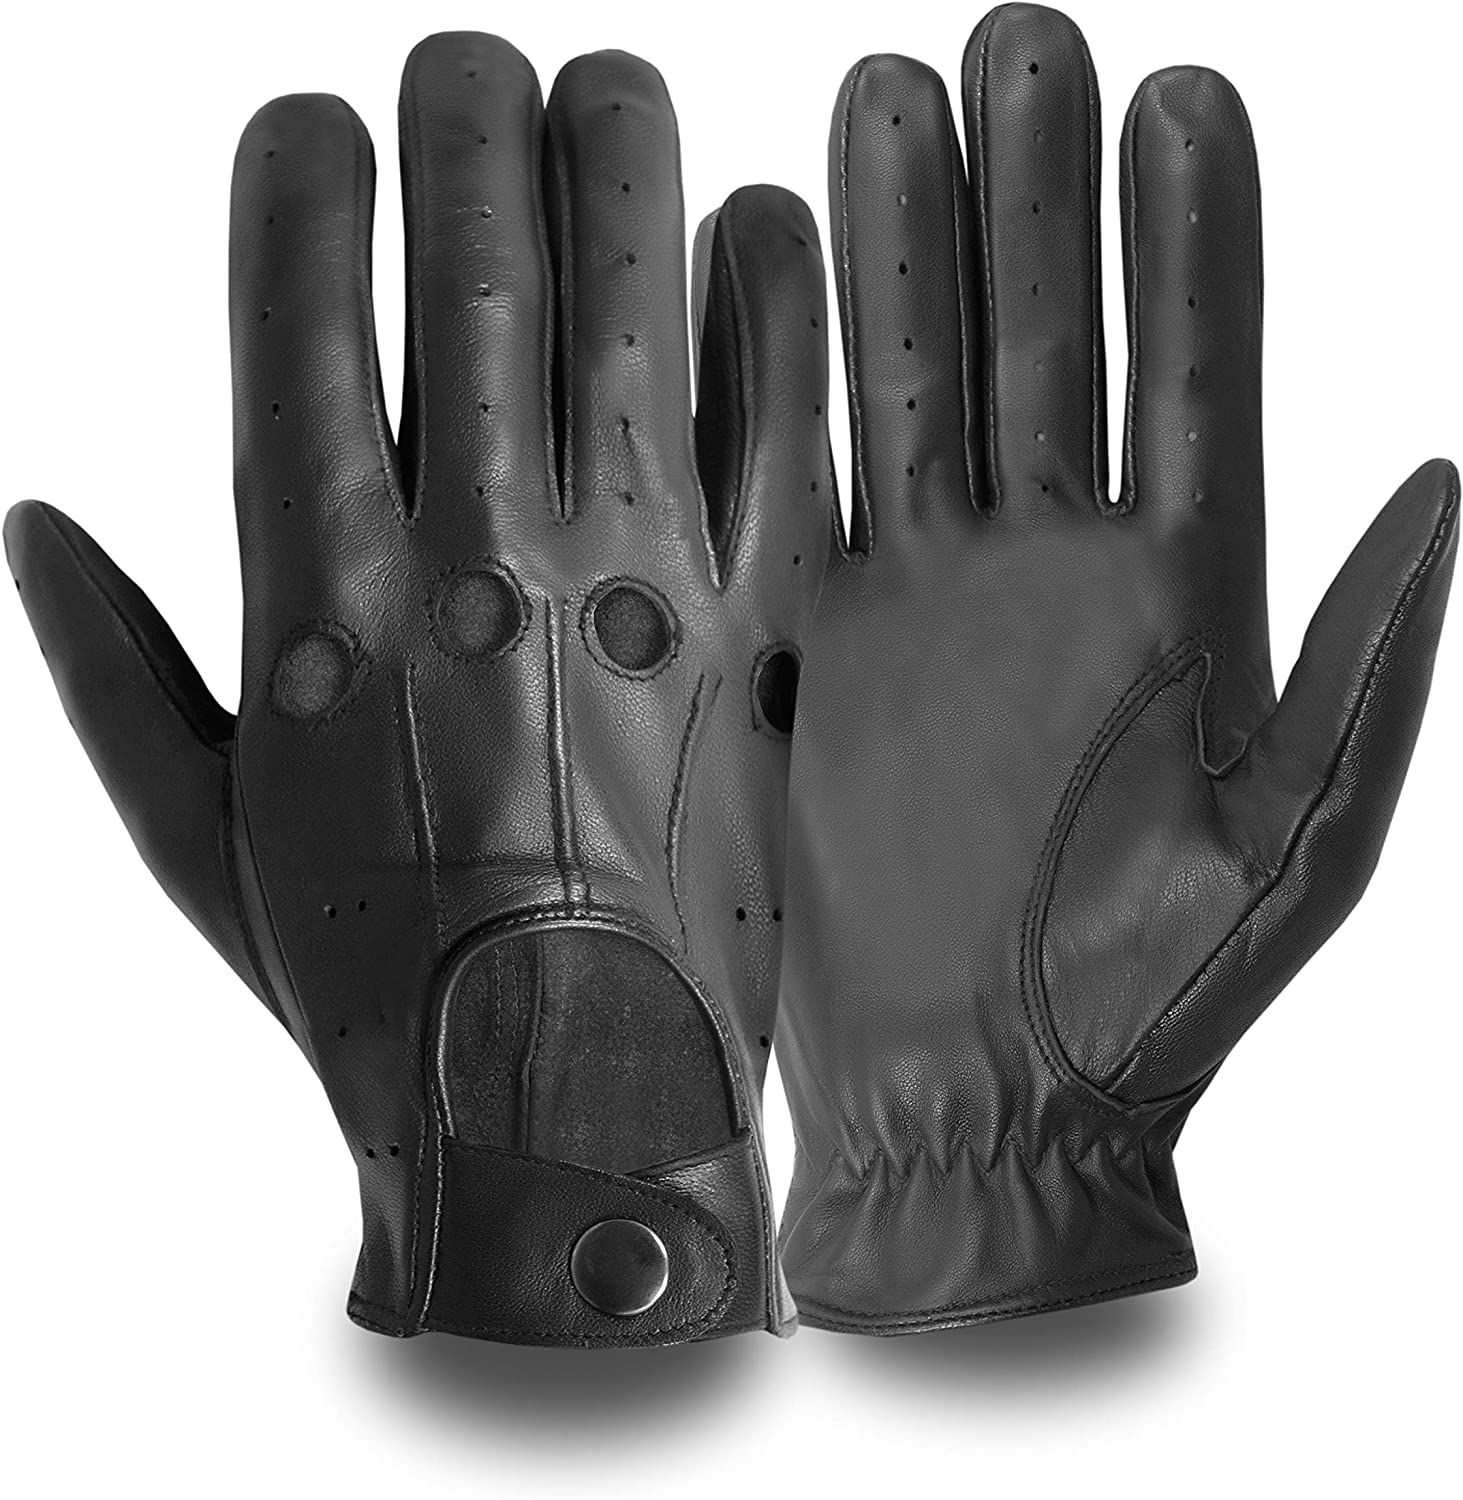 UNLINED 507 Kango Fitness MENS CLASSIC DRIVING GLOVES CHAUFFEUR LAMBSKIN LEATHER DRESS FASHION MOTOR BIKE GLOVE VINTAGE STYLE